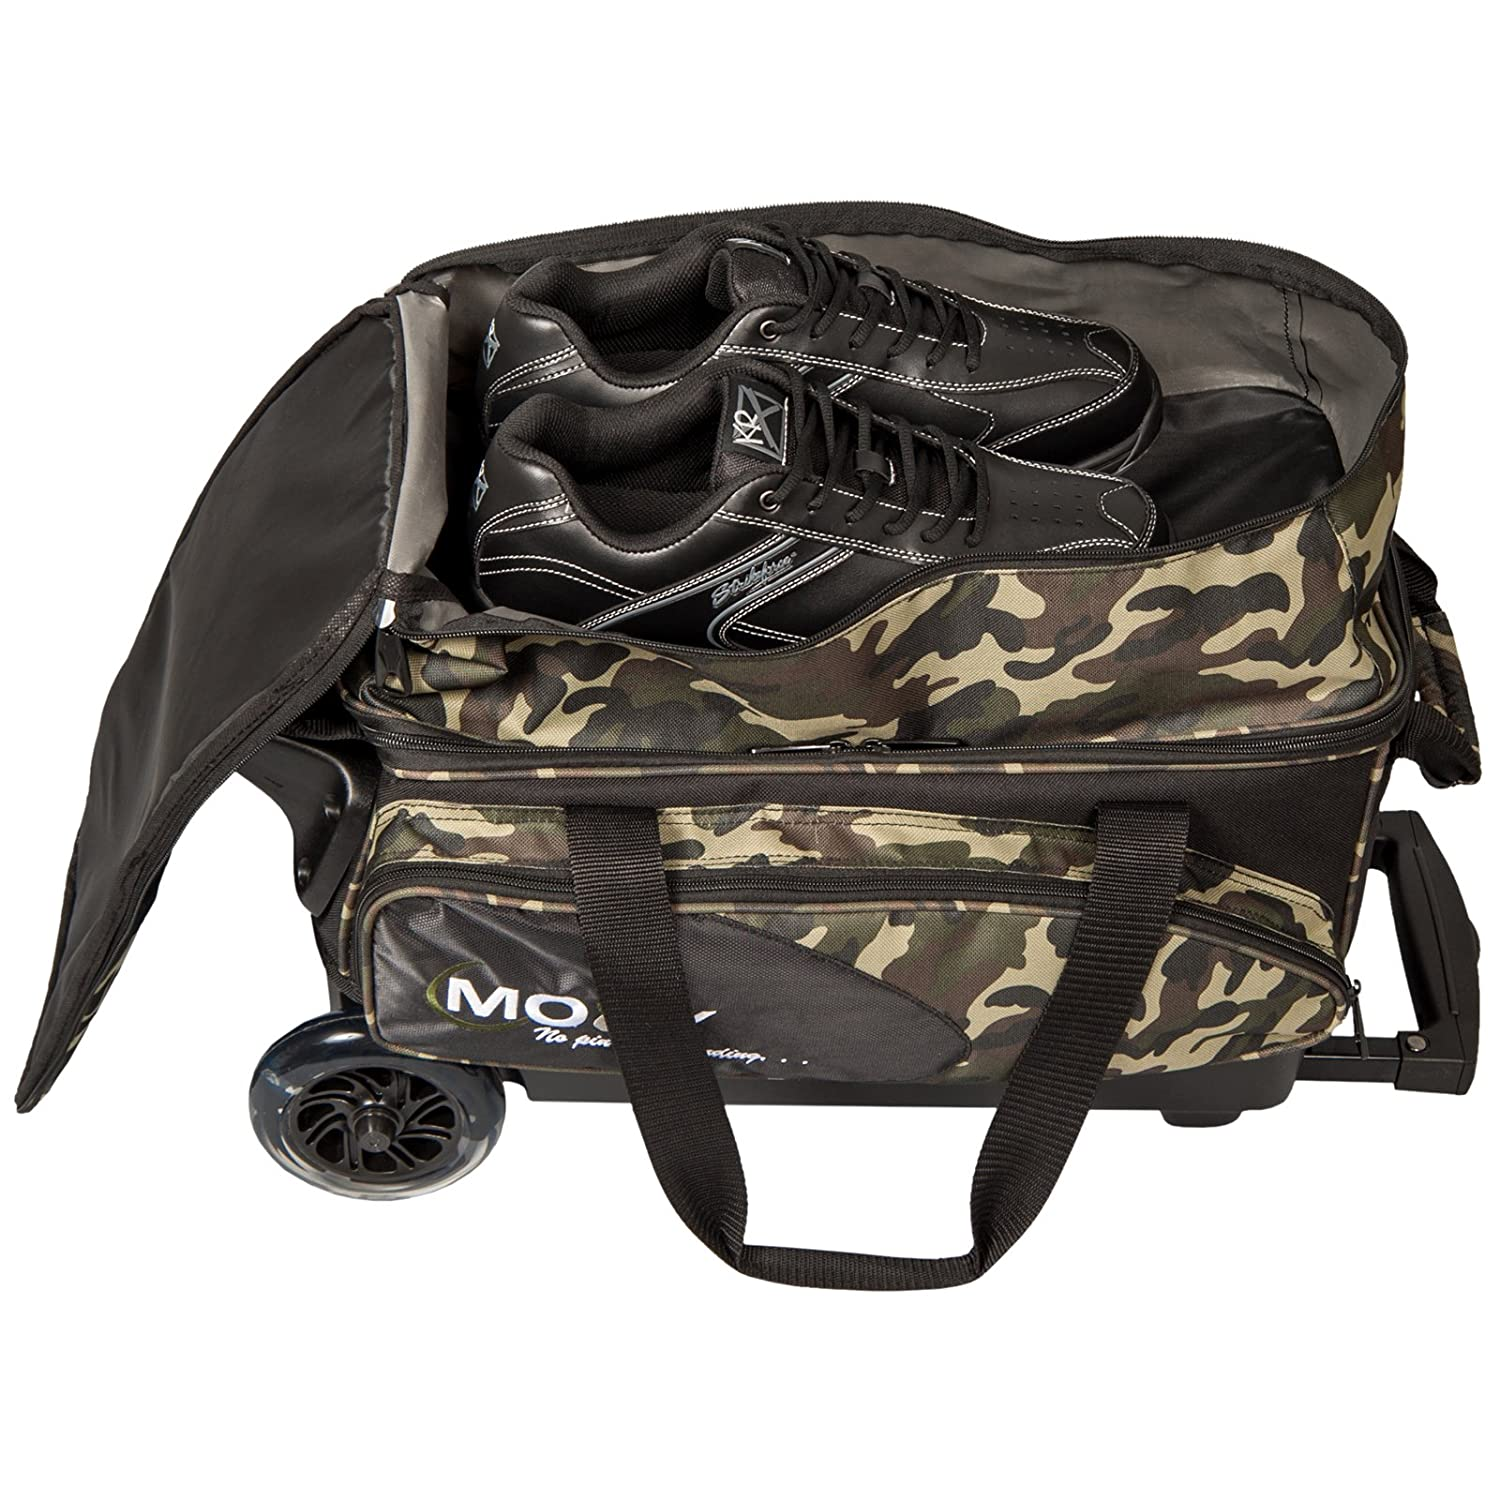 Moxy Blade Premium Double Roller Bowling Bag- Camouflage Moxy Bowling  Products BSSTMOXY1948 5209807e07